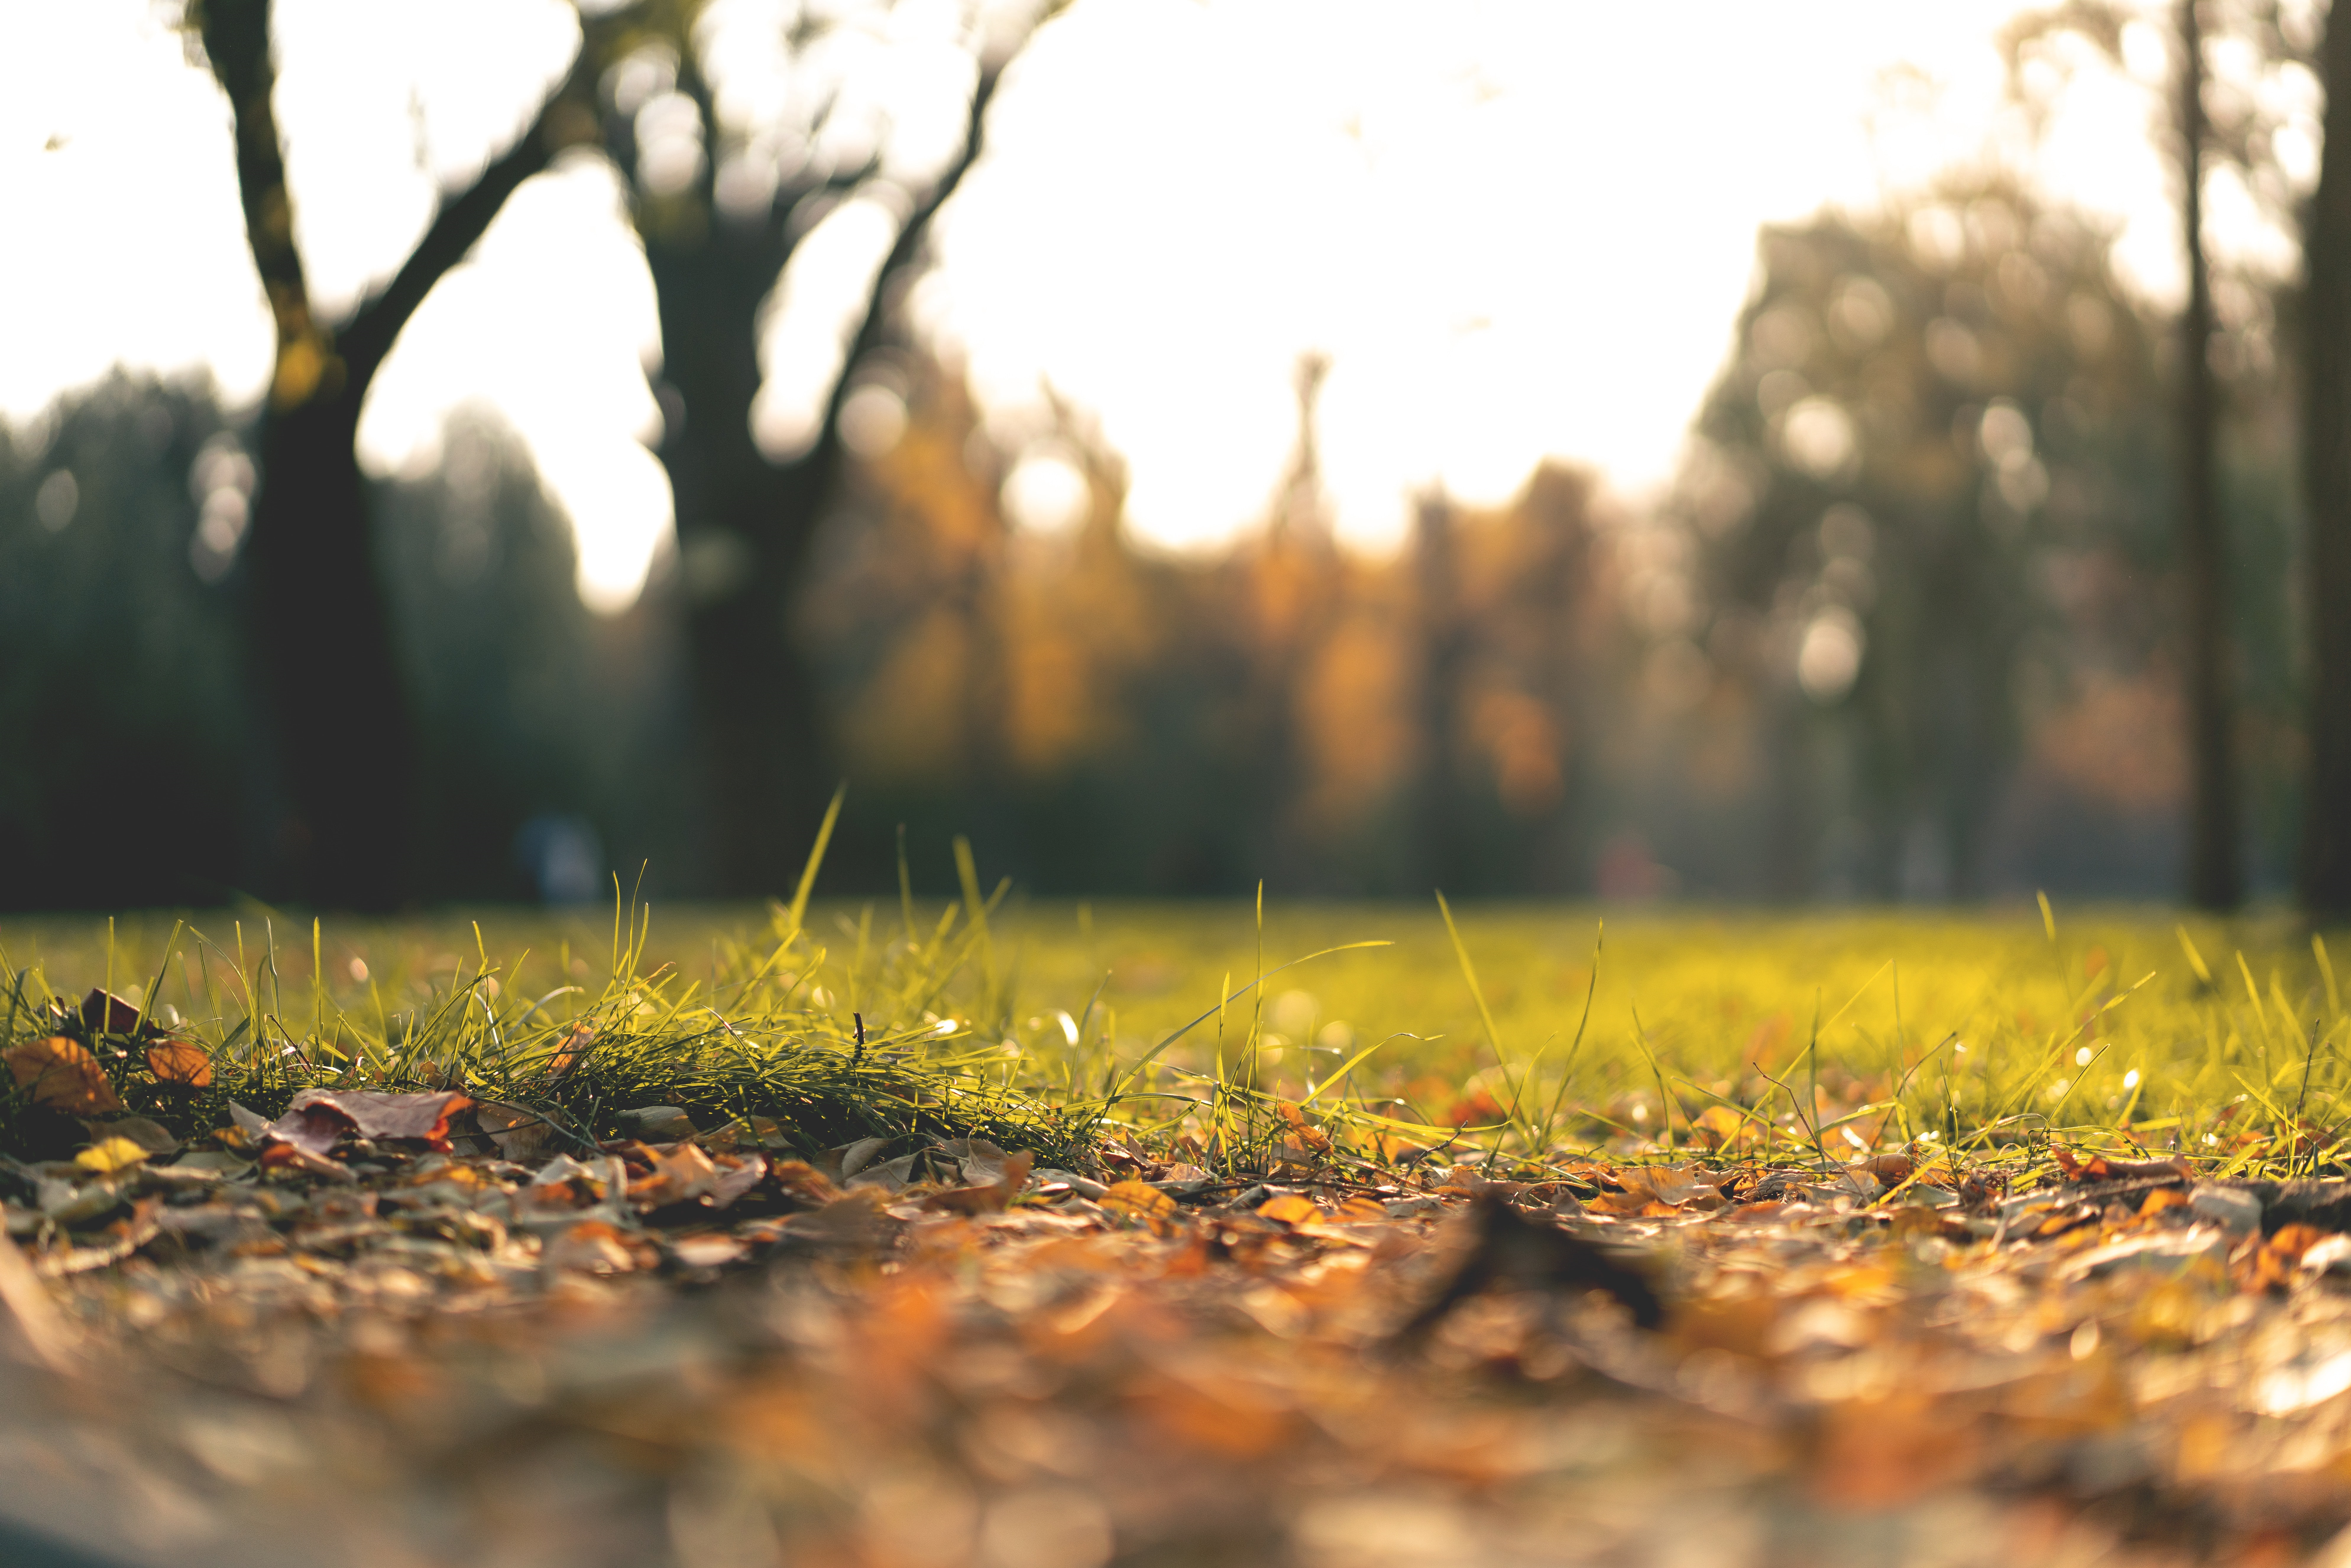 A selective focus image of autumn leaves on a grassy lawn